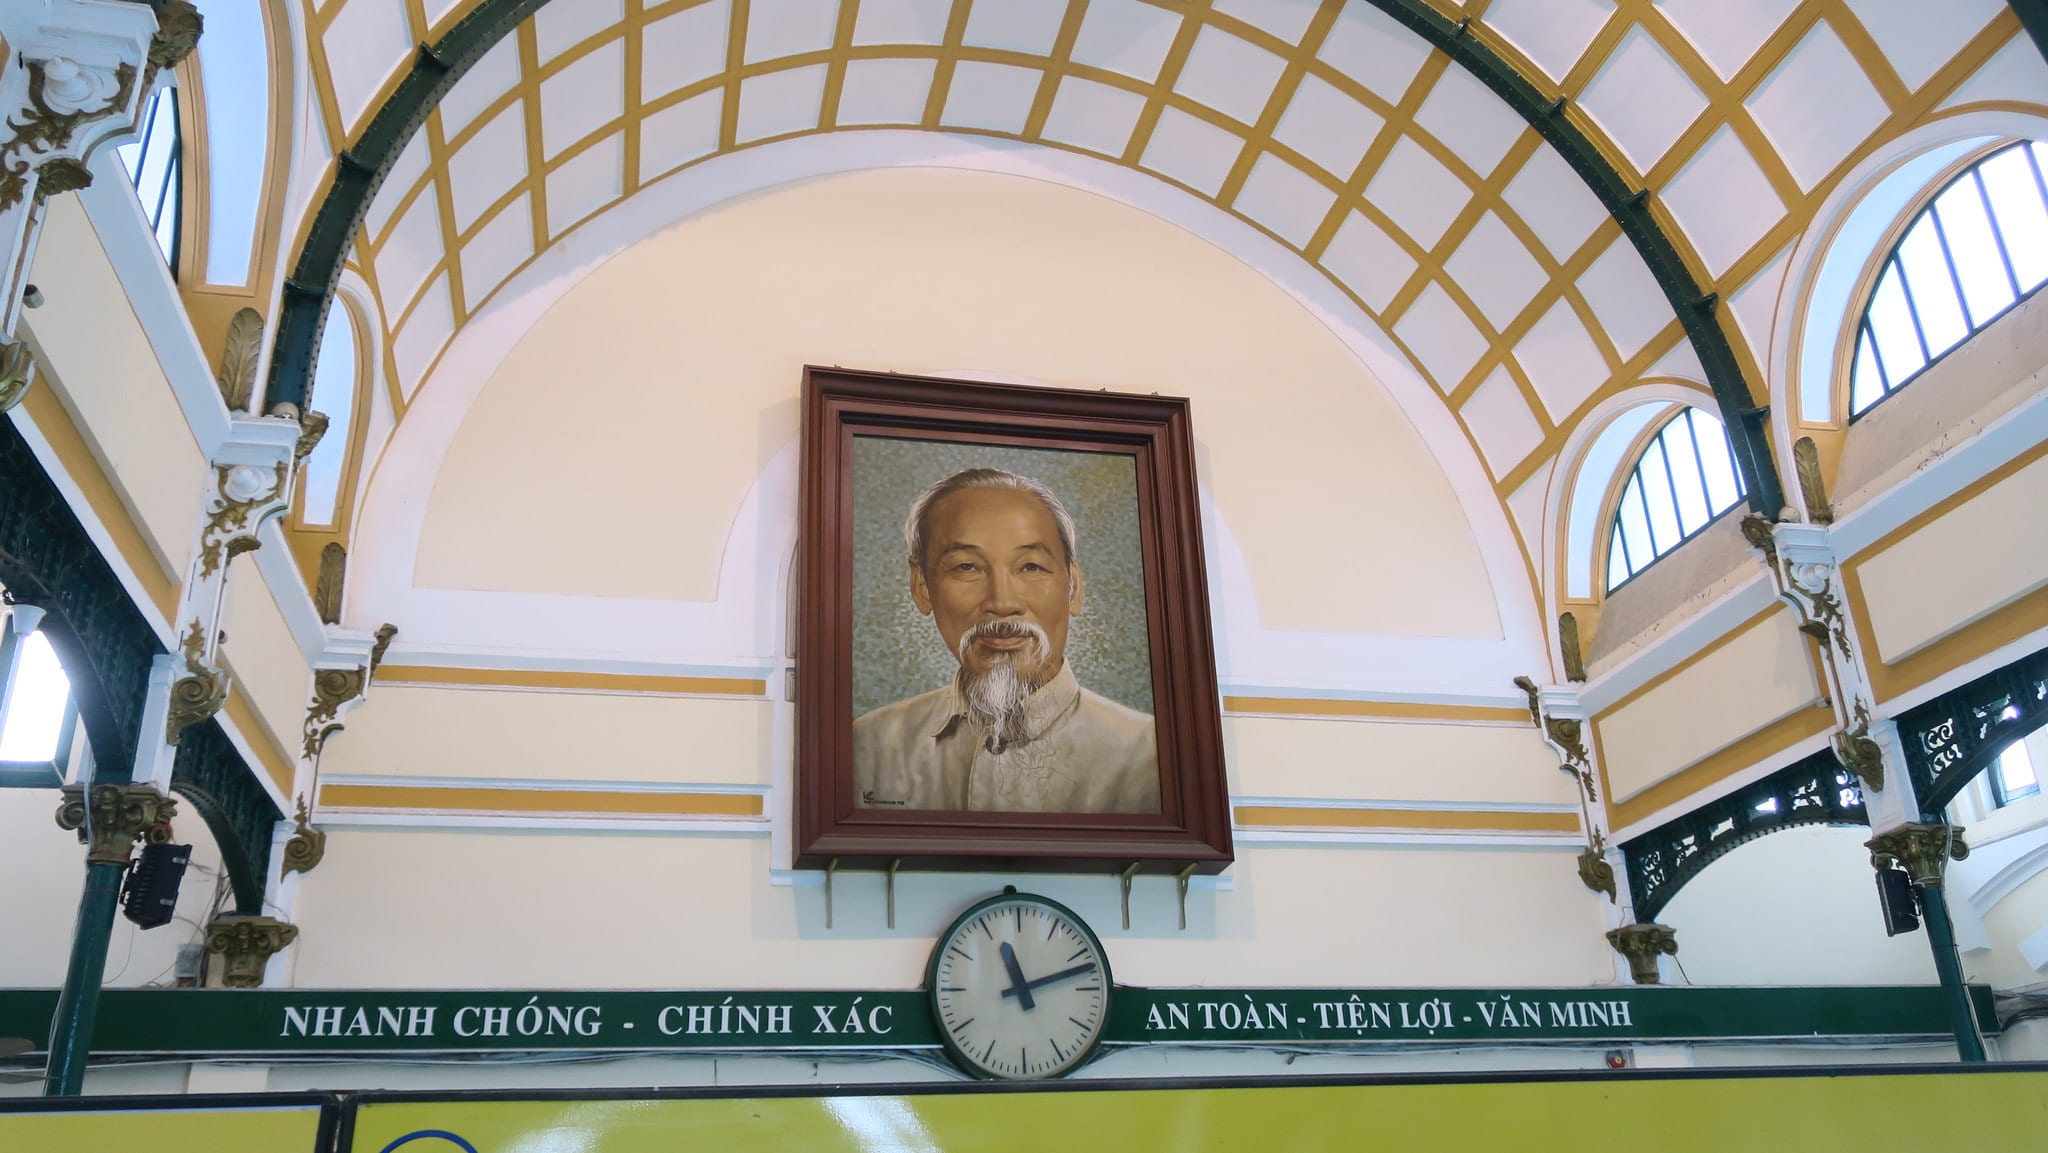 Image of Ho Chi Minh's portrait in the Saigon Central Post Office in Vietnam